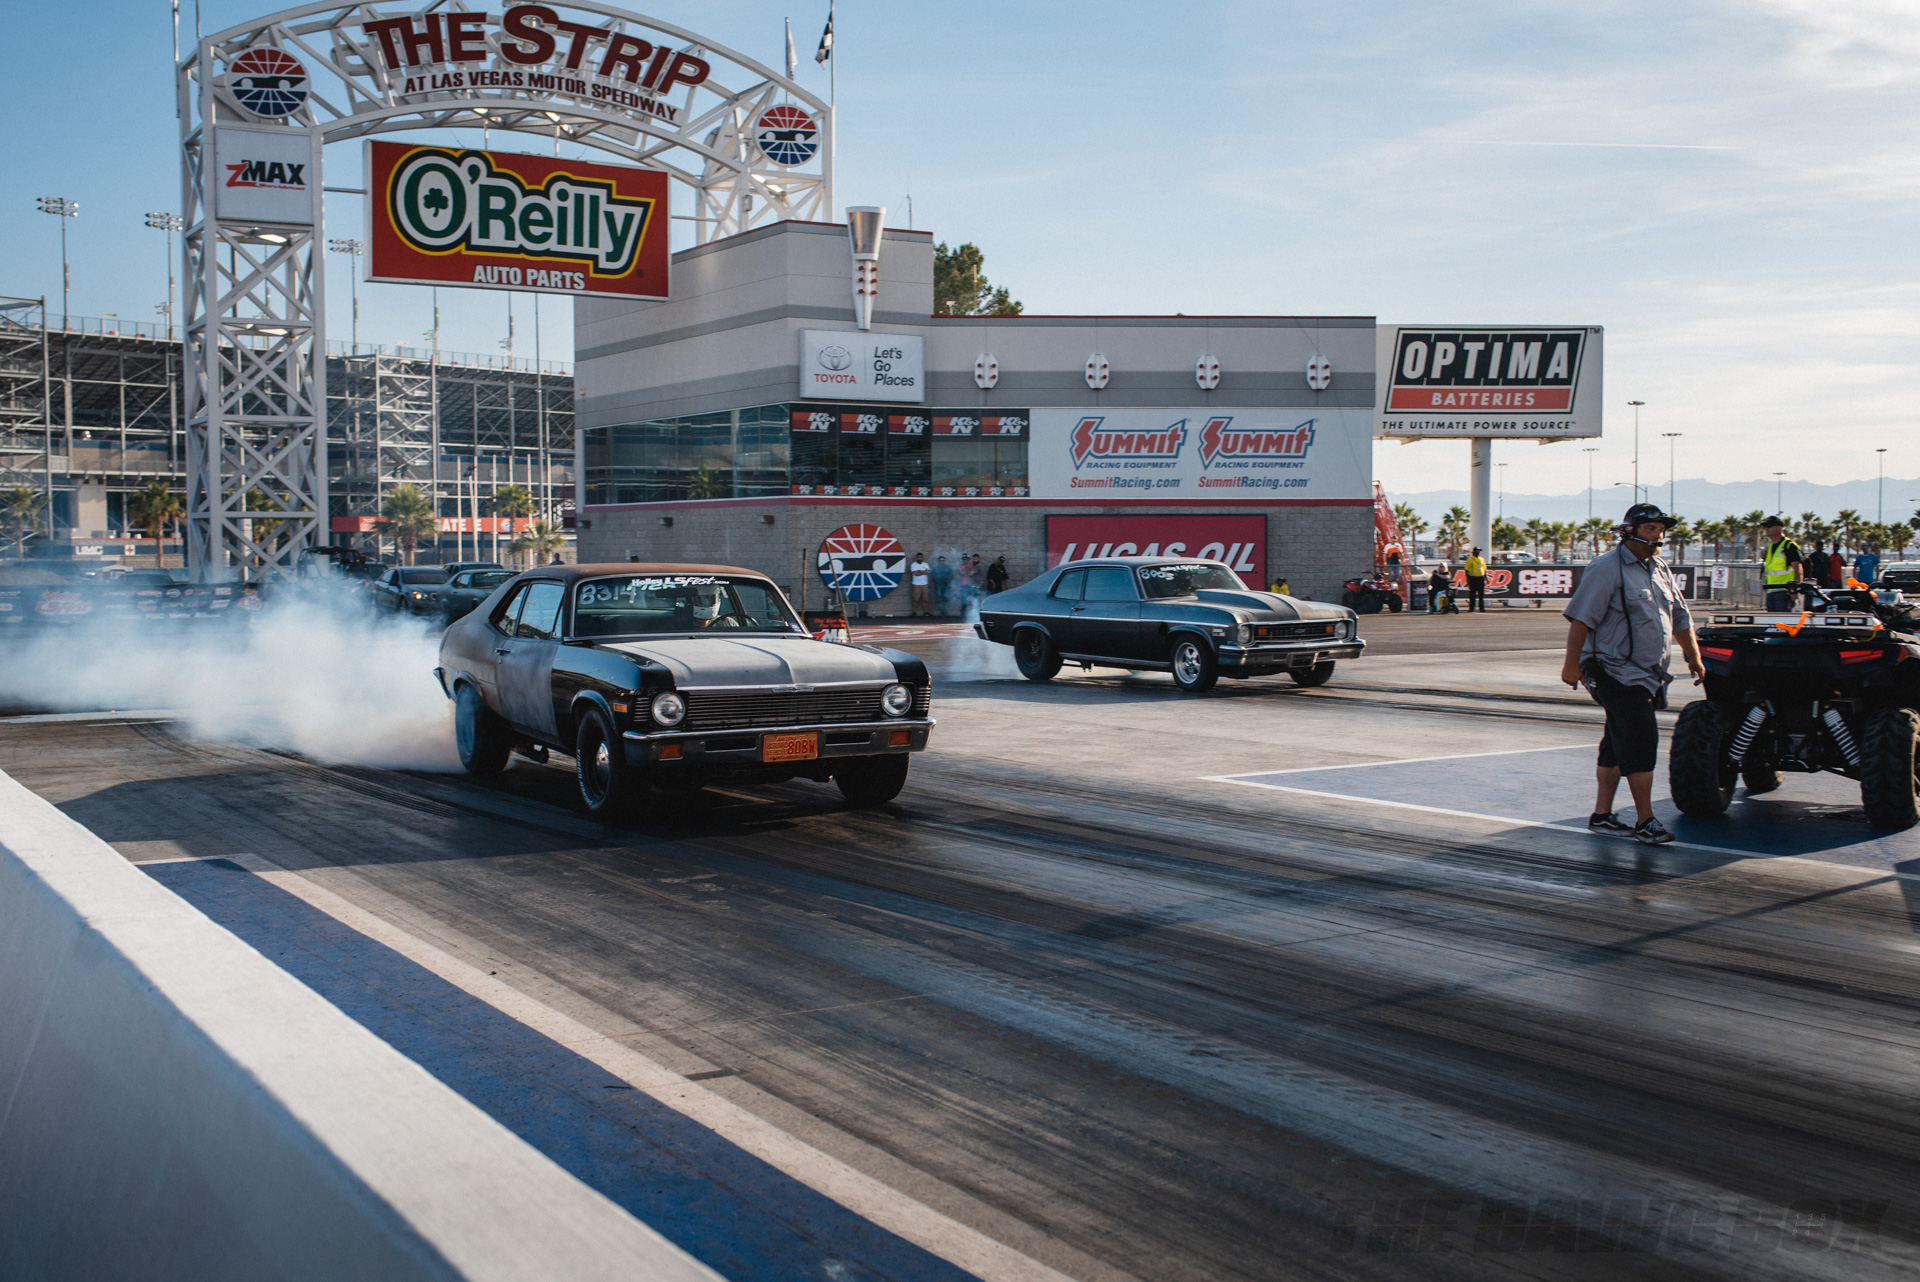 Chevy muscle cars doing burnouts and getting ready for a drag race